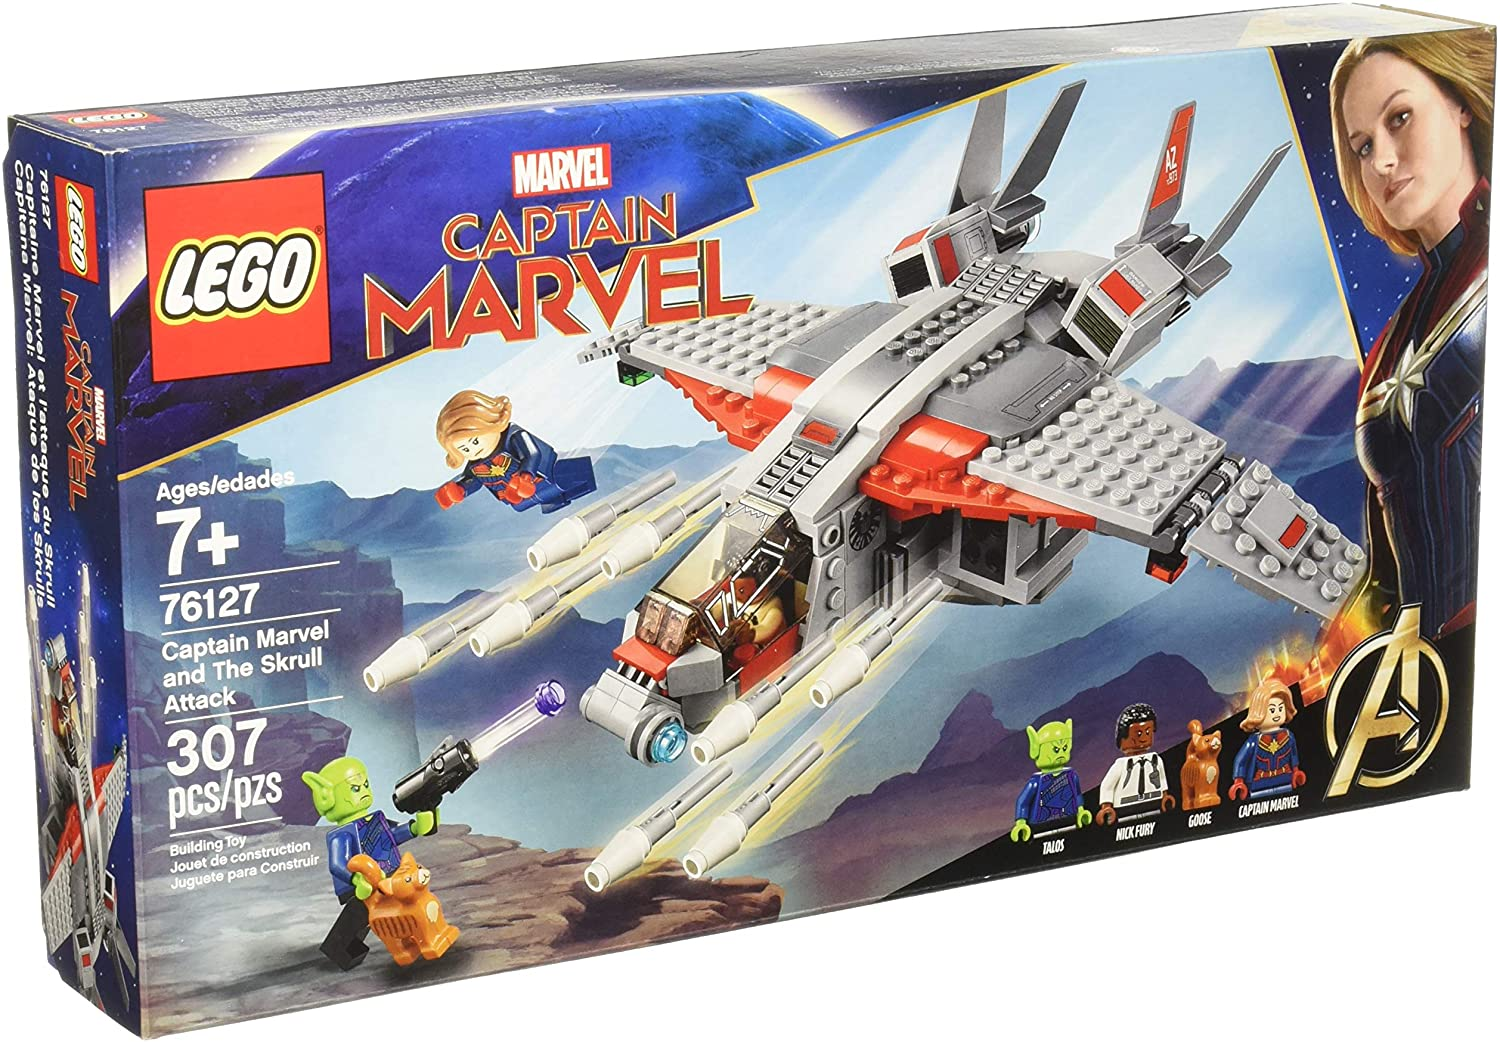 LEGO 76127 - Captain Marvel and The Skrull Attack (307pcs)